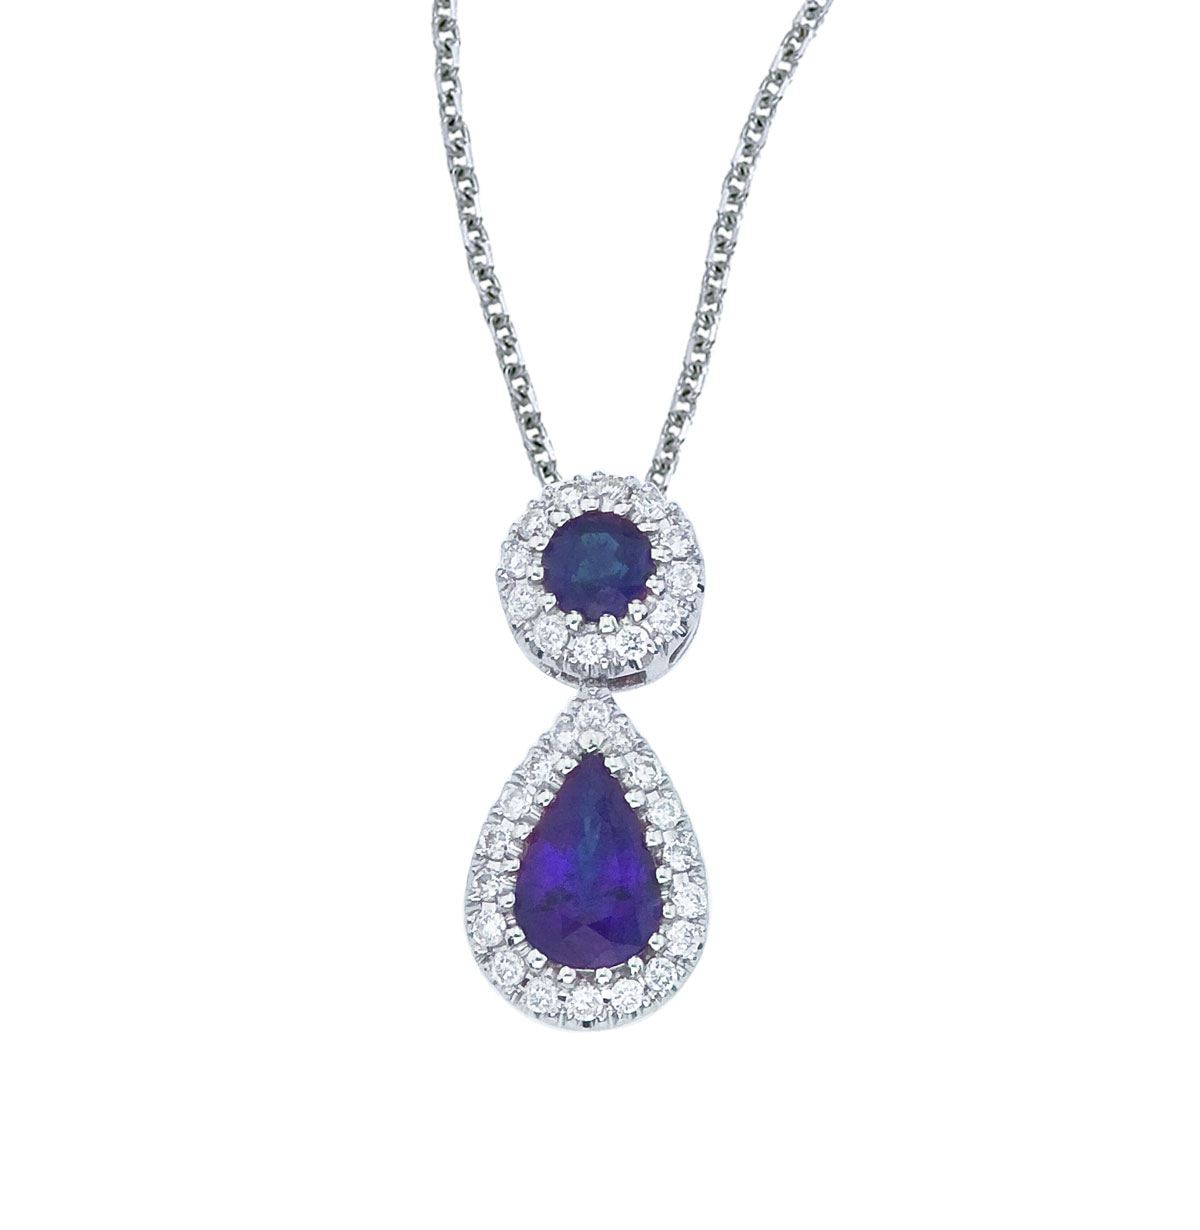 This beautiful 14k white gold pendant features a 6x4 mm sapphire dangling from a 2.5 mm round sap...